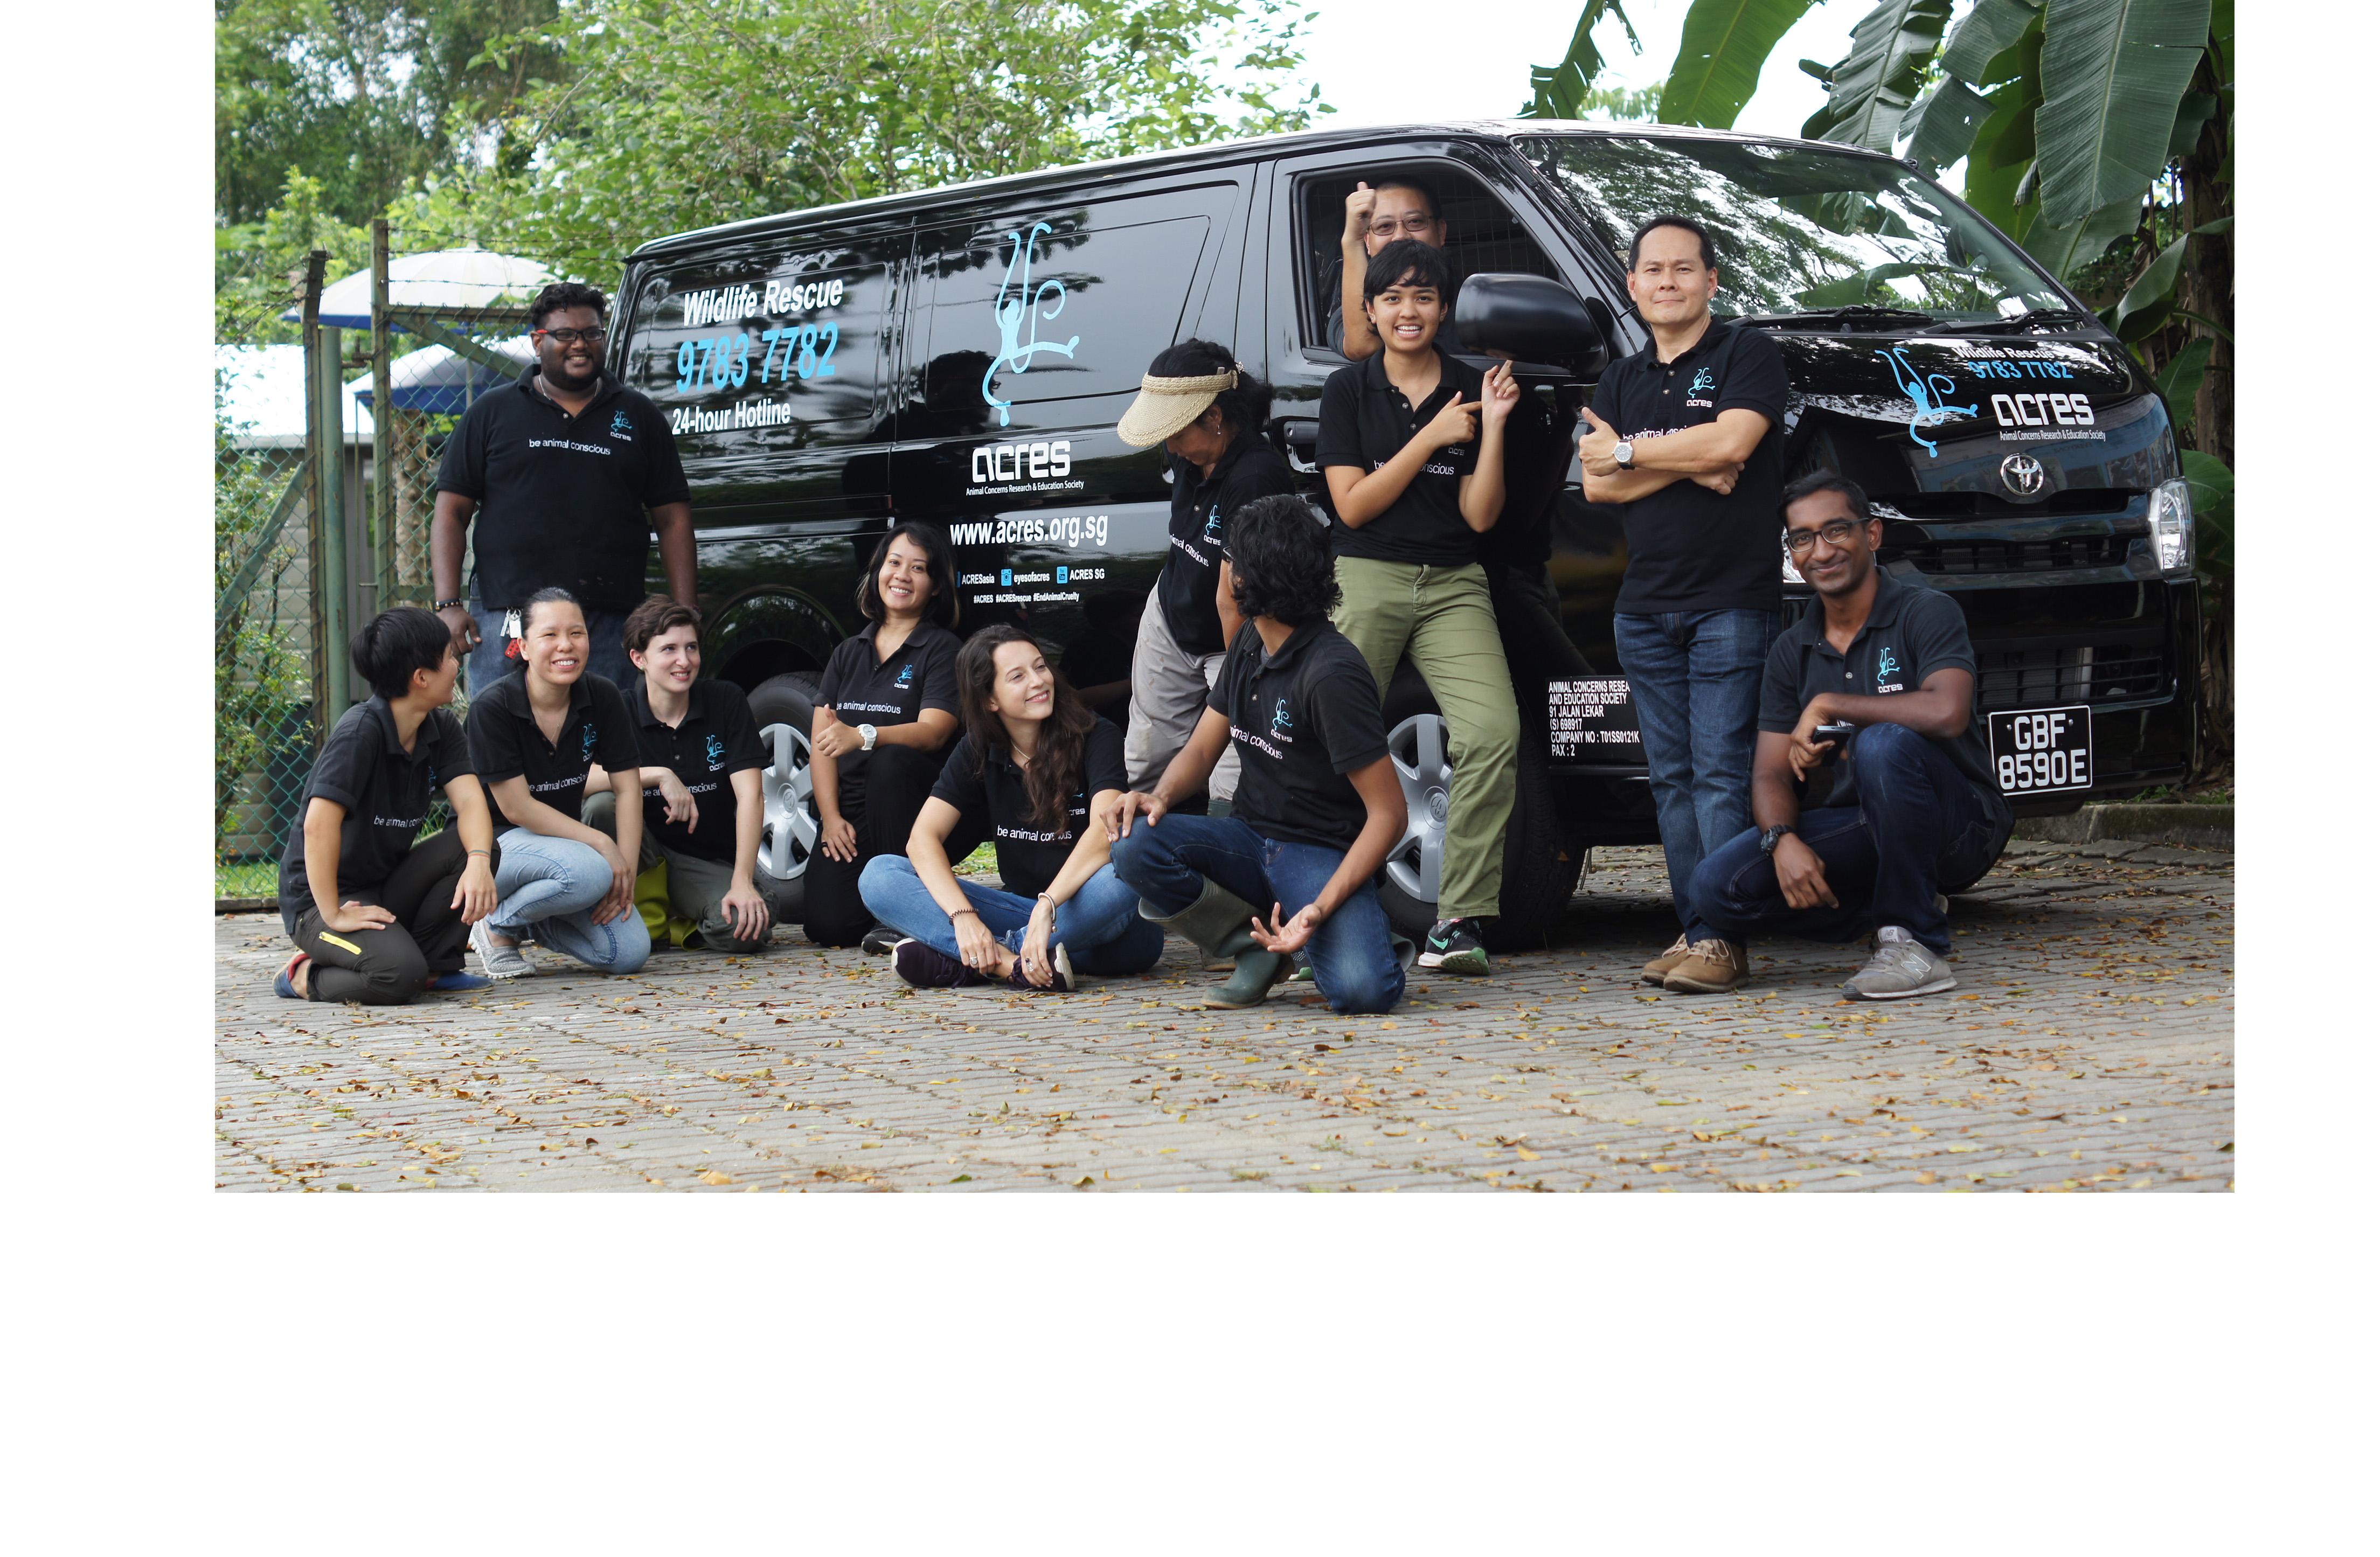 With your help, we now have a new Wildlife Rescue Van!